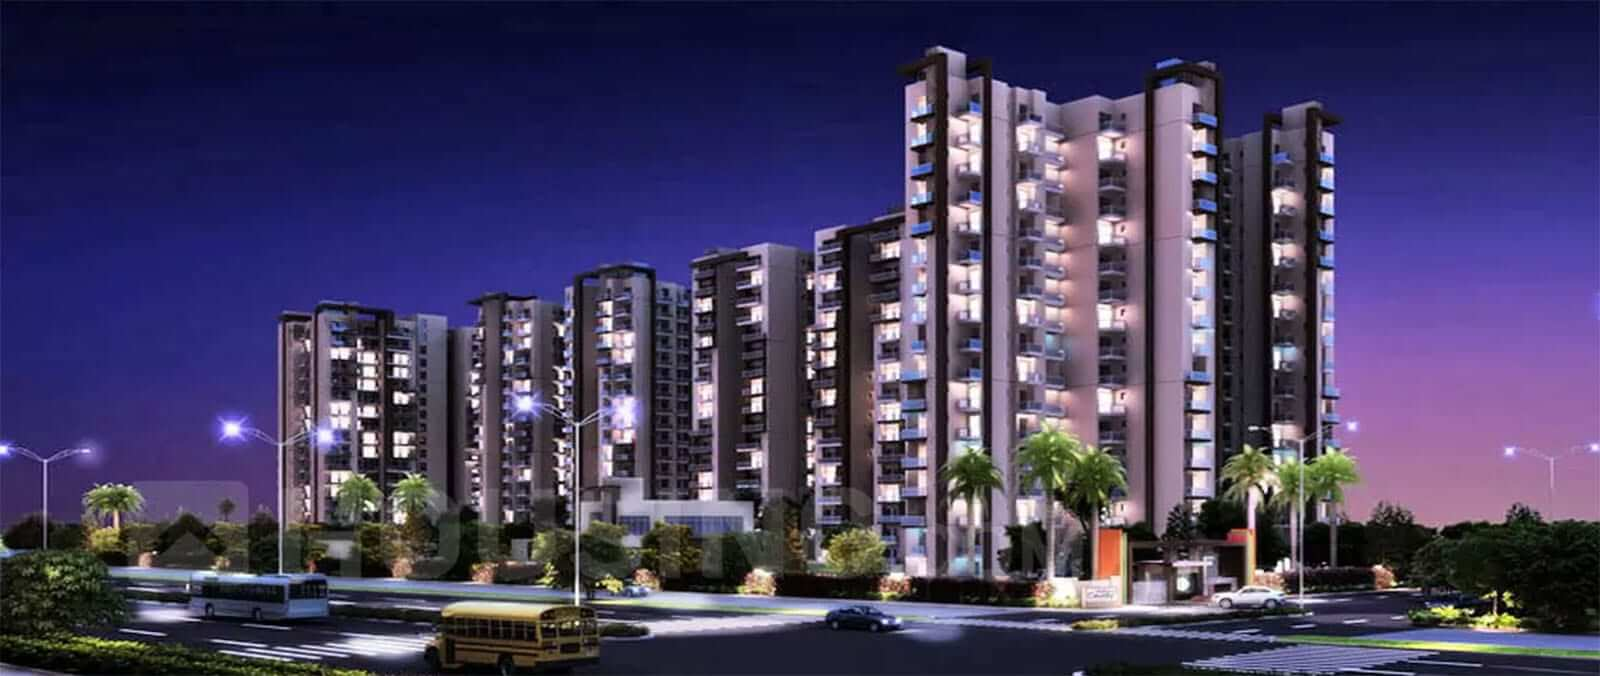 Best Flats at resonable rates in Faridabad